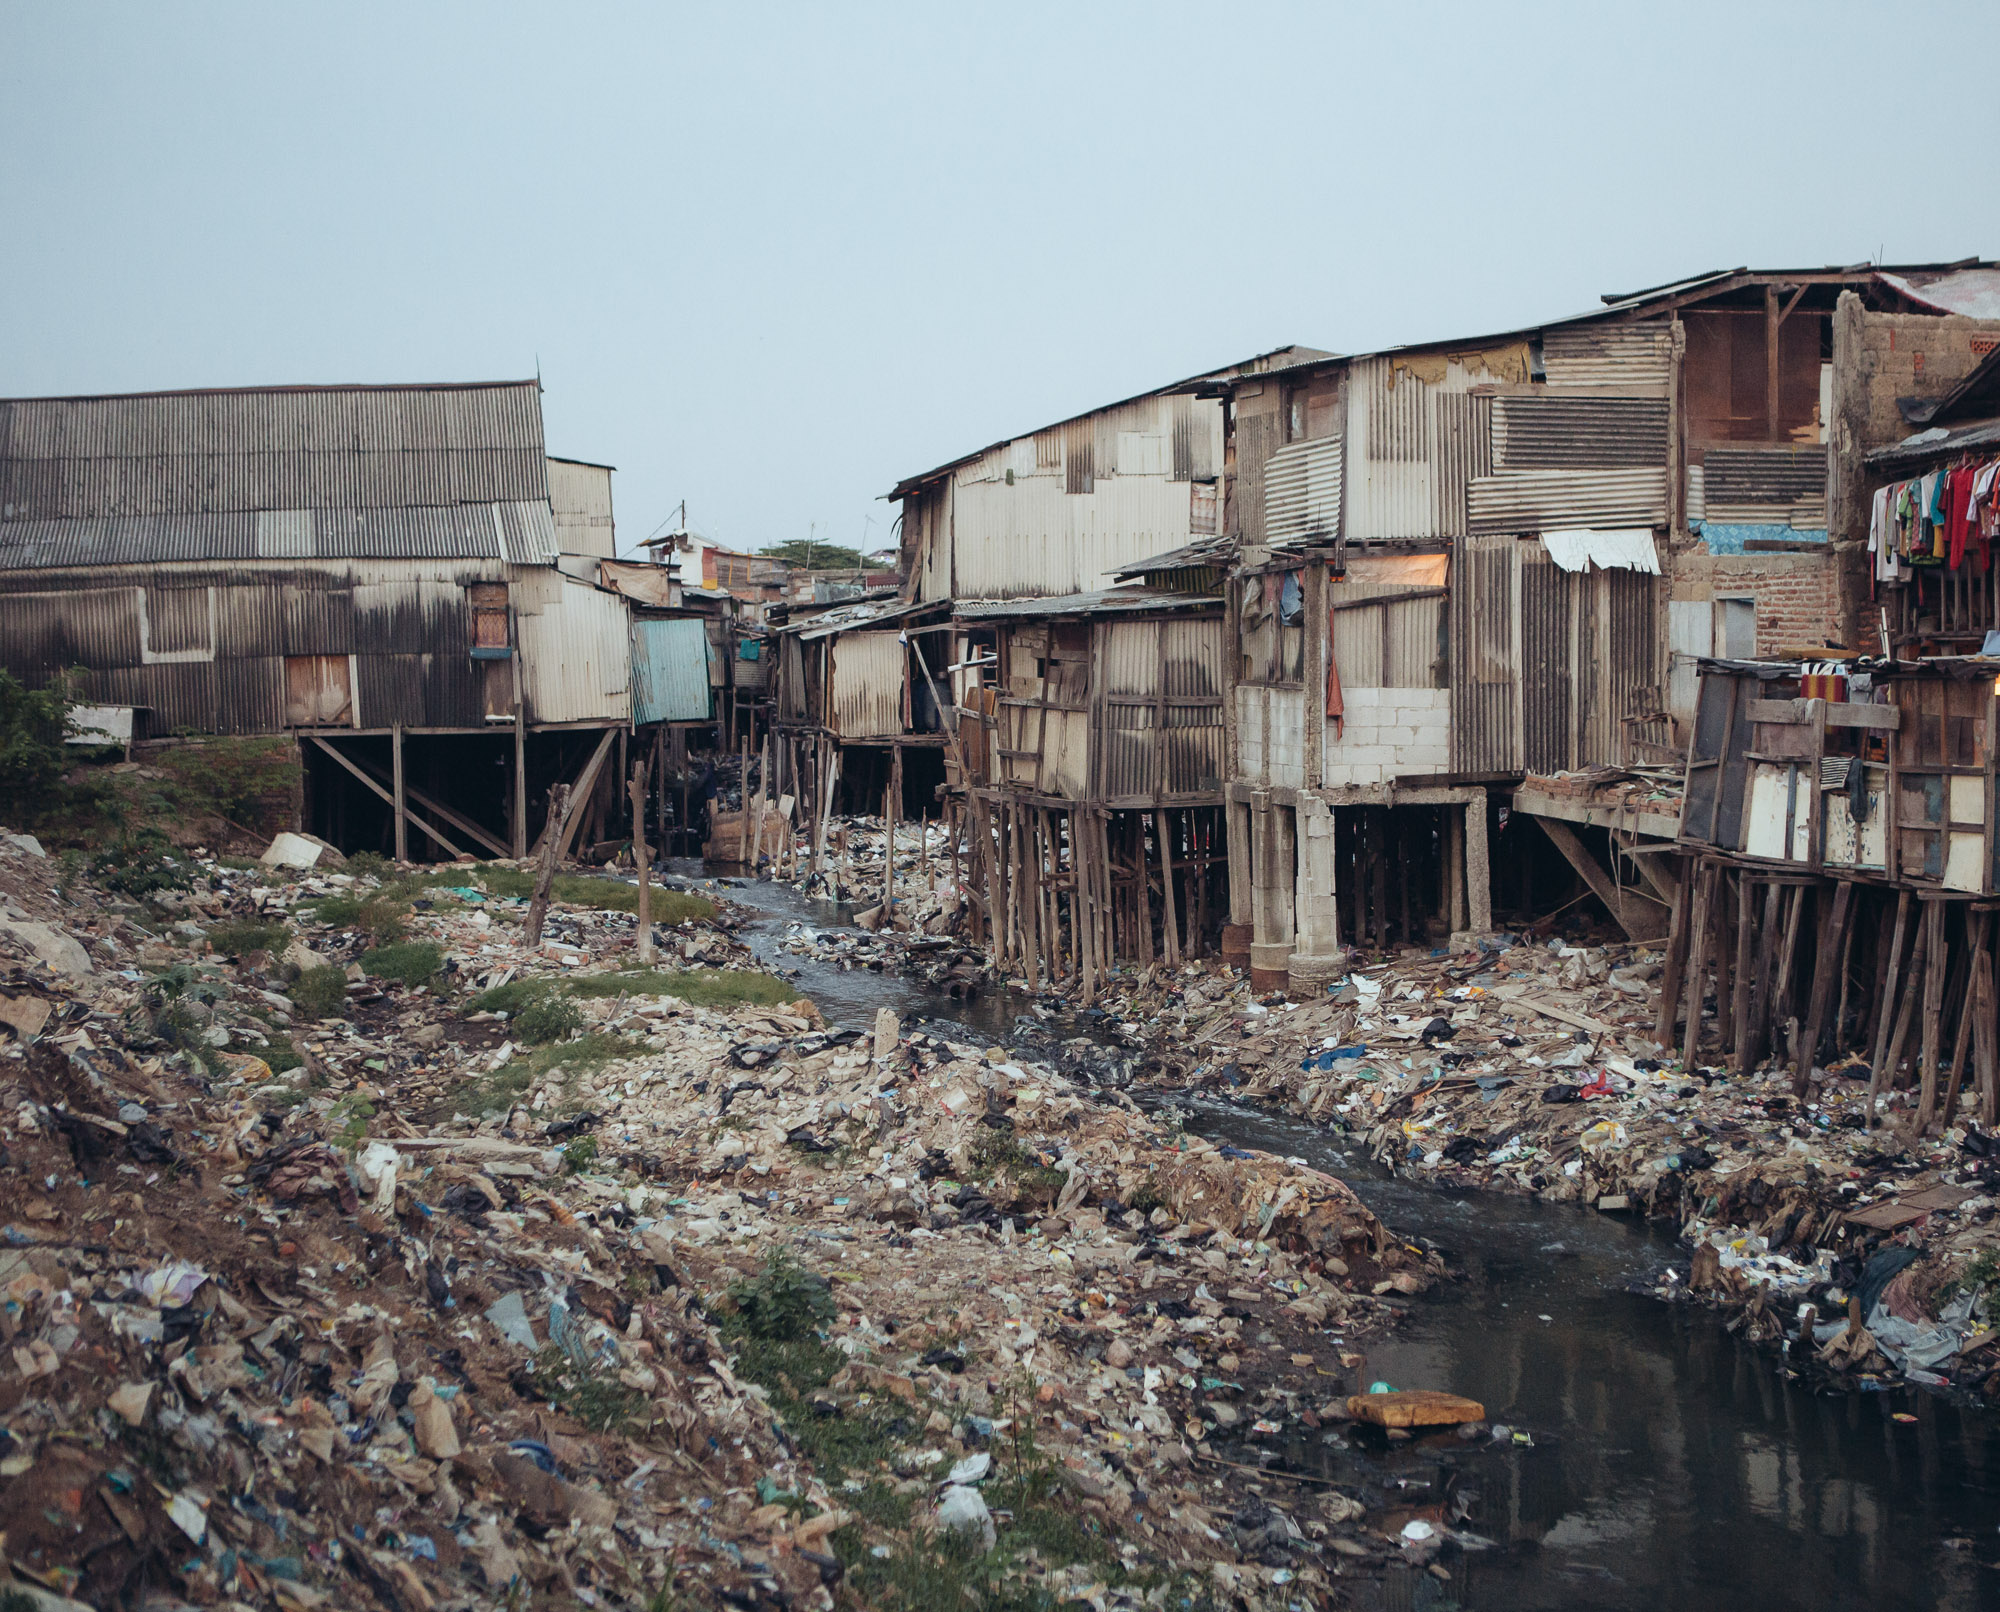 Informal housings at of the remaining slums in Pluit, North Jakarta, are already below sea level. (Photo by Muhammad Fadli/GroundTruth)